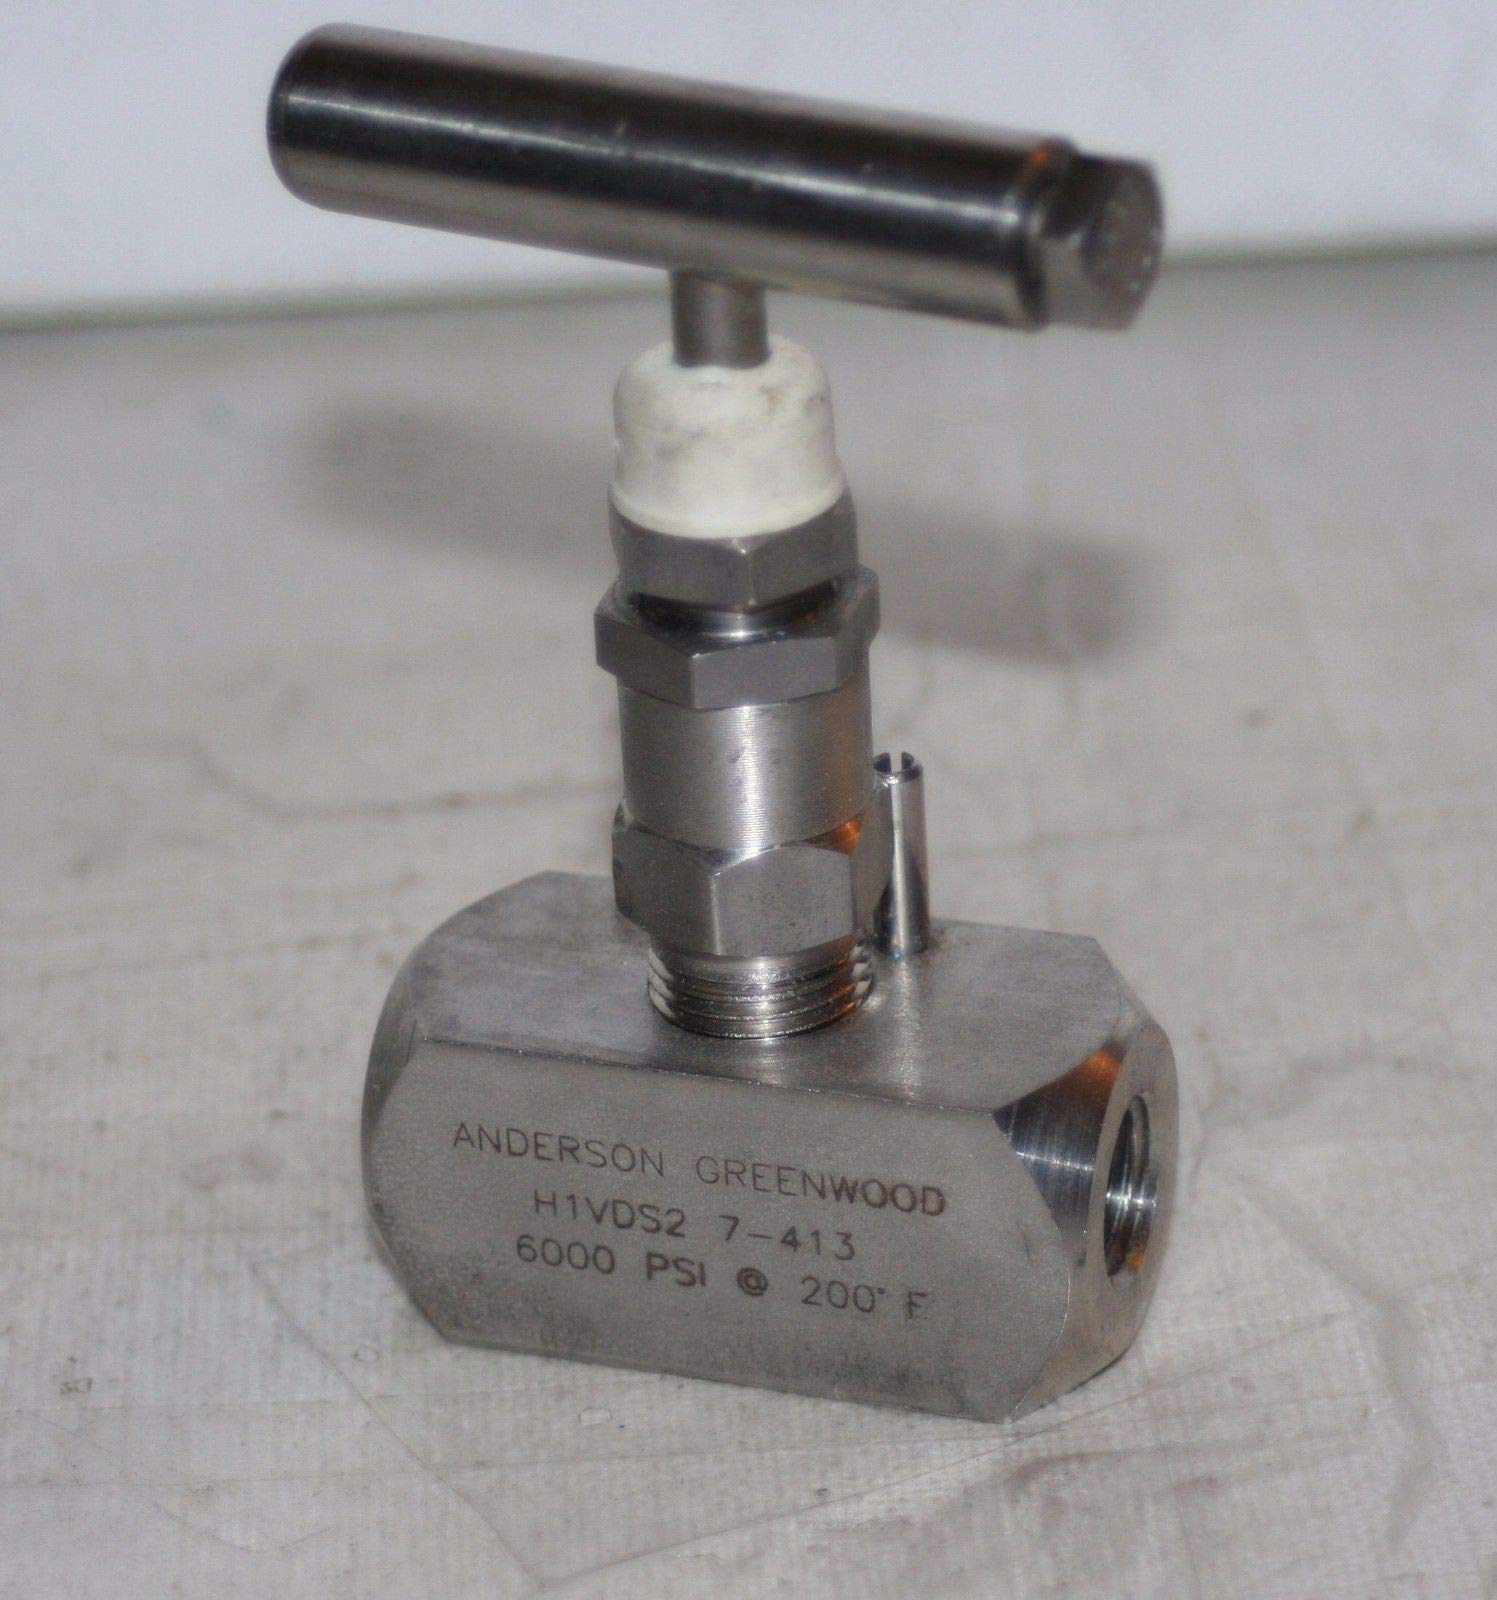 1/4'' NPT 6000 Psi SS Needle Valve Anderson Greenwood H1VDS2 7-413